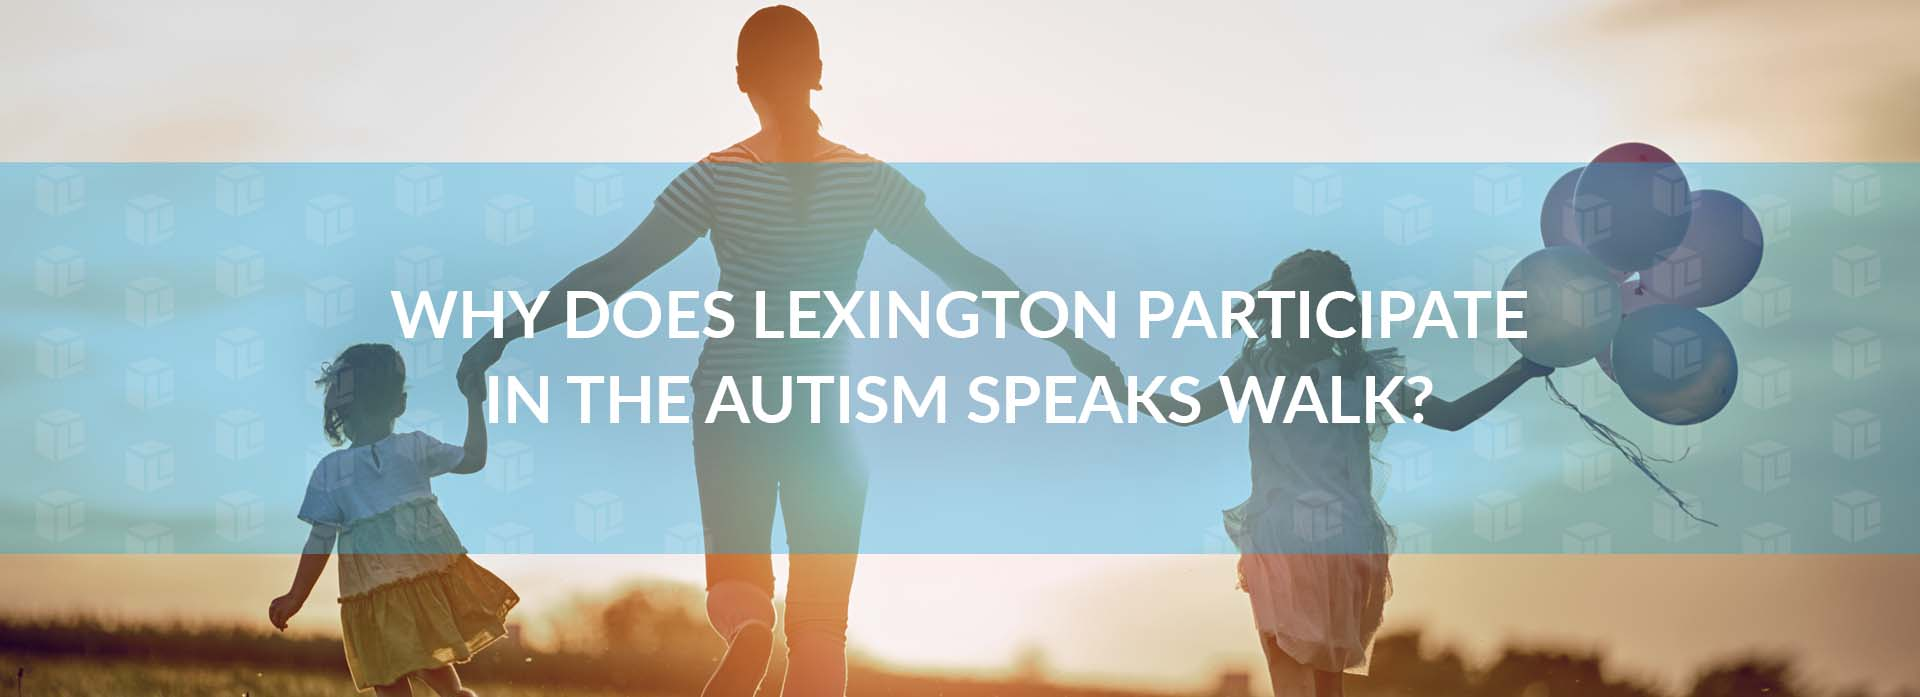 Why Does Lexington Participate In The Autism Speaks Walk?